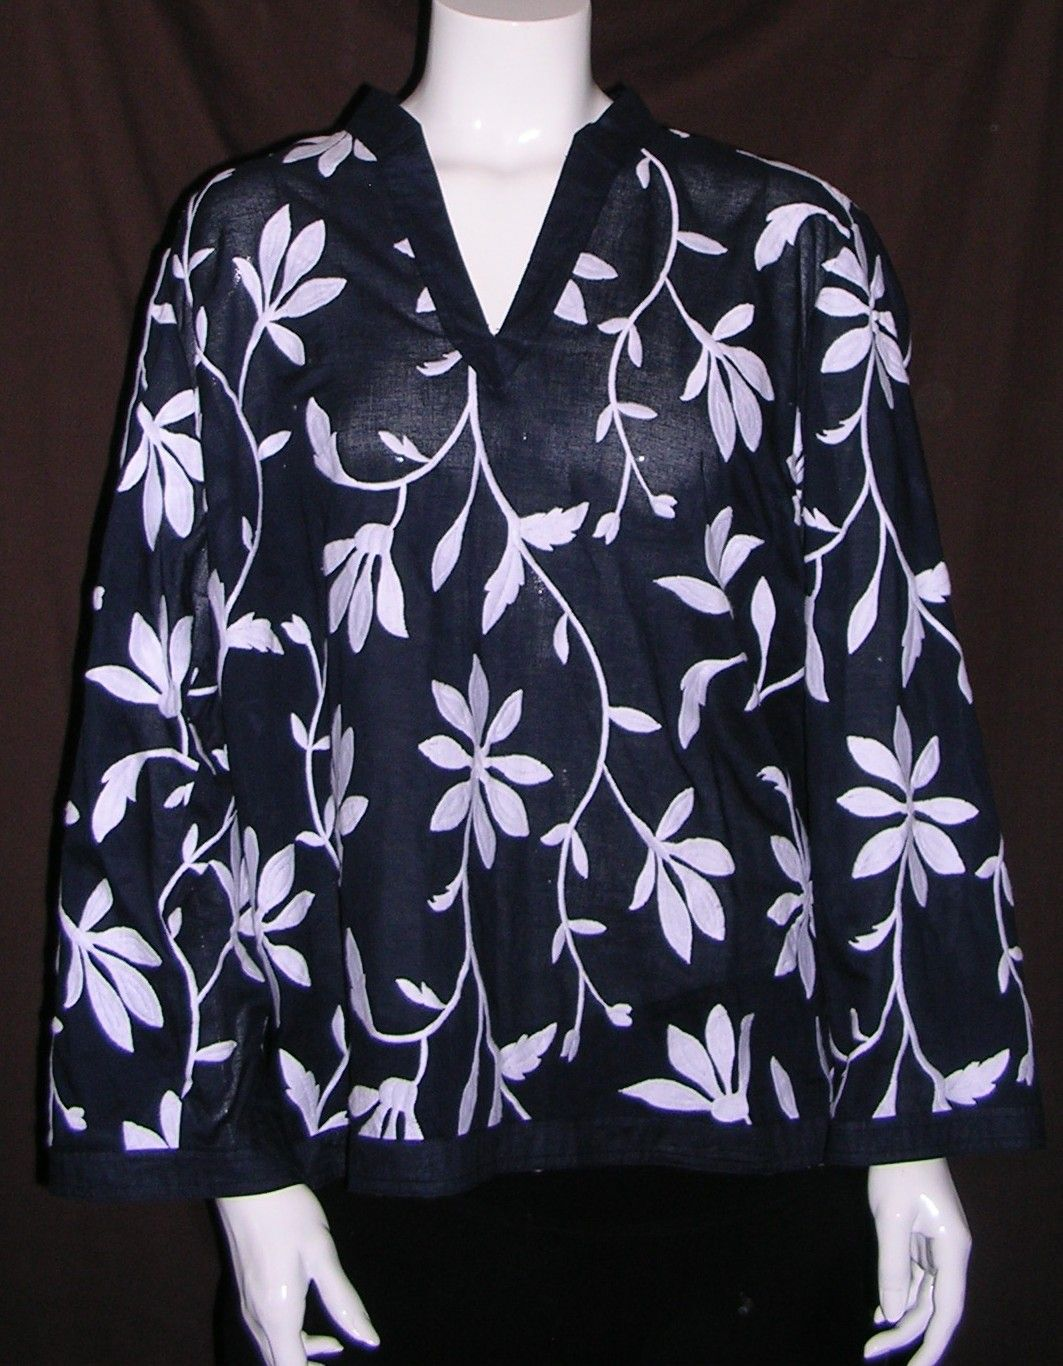 0d9668521a1 Urban Thick, Your ONLY Online Consignment Store For Plus Size Women. Black  & White Classy Blouse by Talbots Woman Petites, Size 18W Adidas Jacket,  Talbots